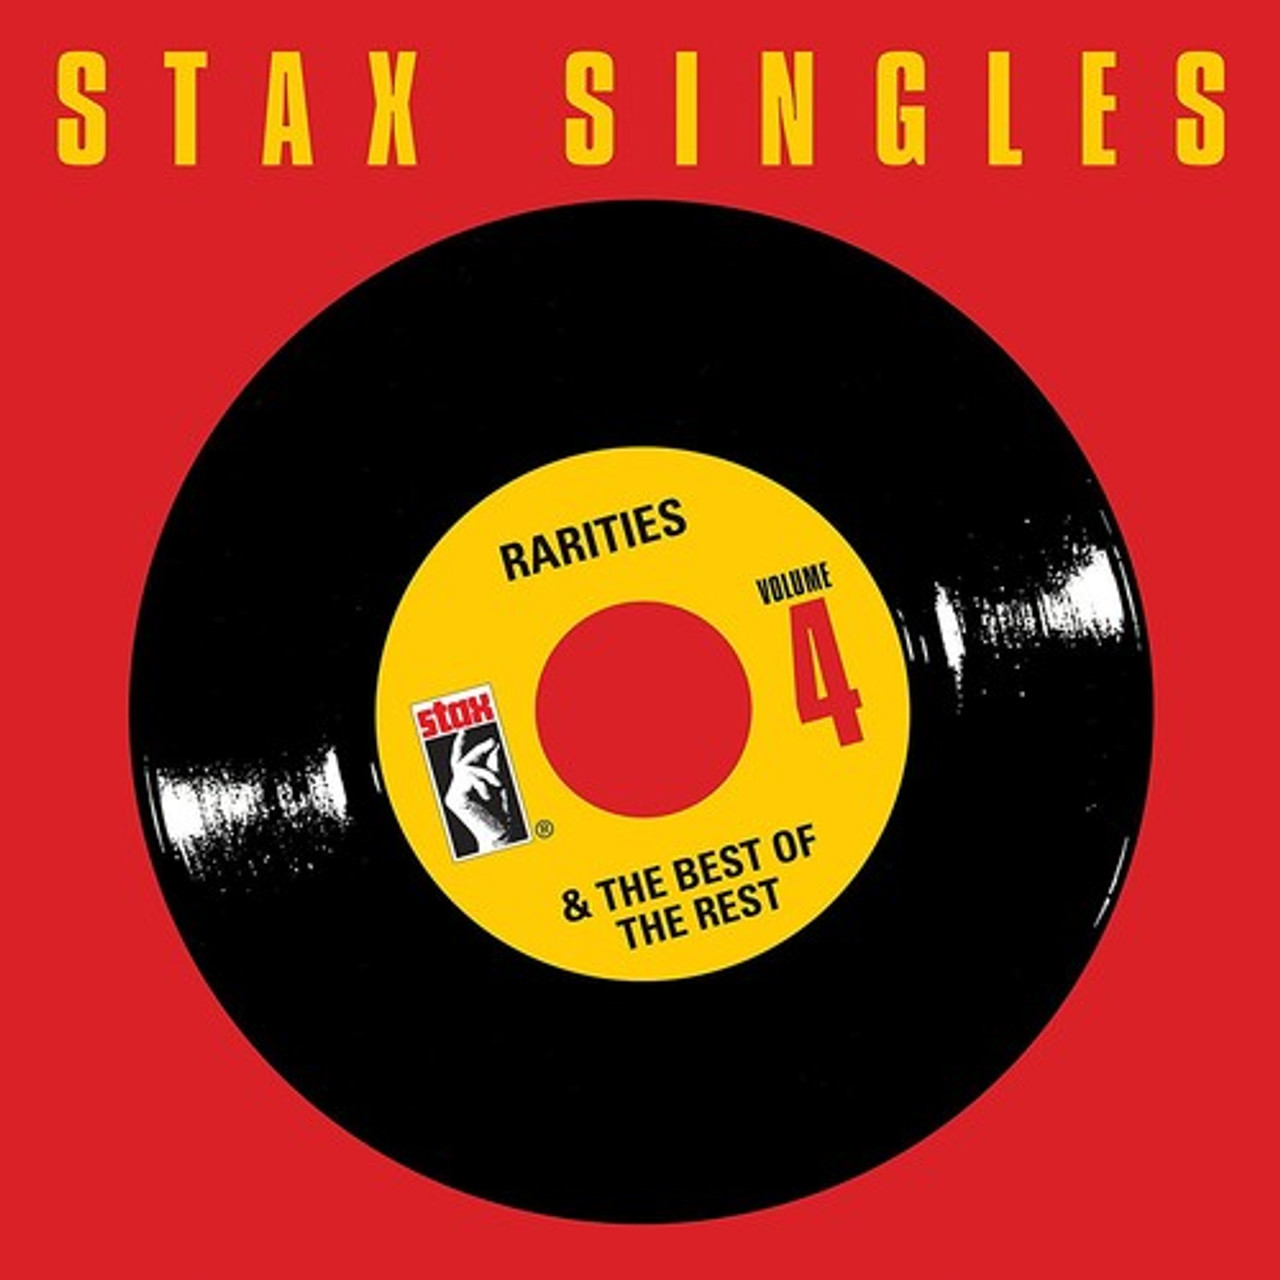 Stax Singles, Vol. 4: Rarities & Best Of (Various Artists) 6 CD Set